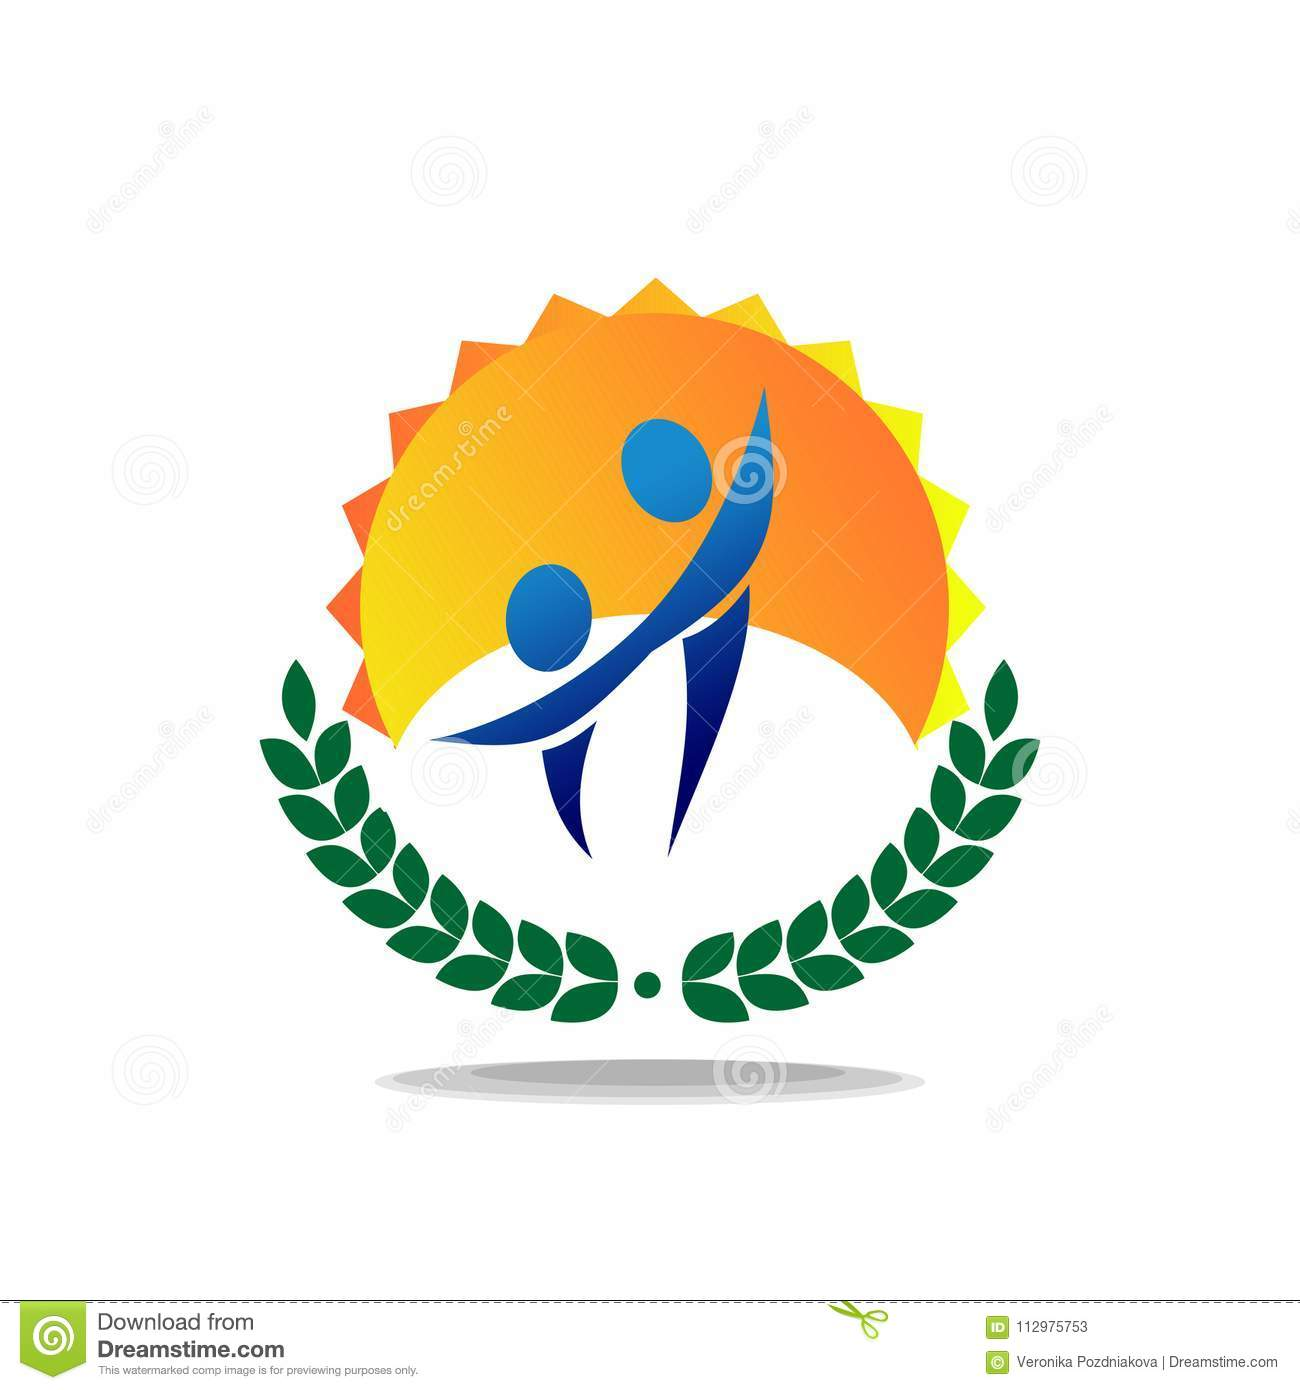 Logo of two people against the sun. Simple multicolored emblem.